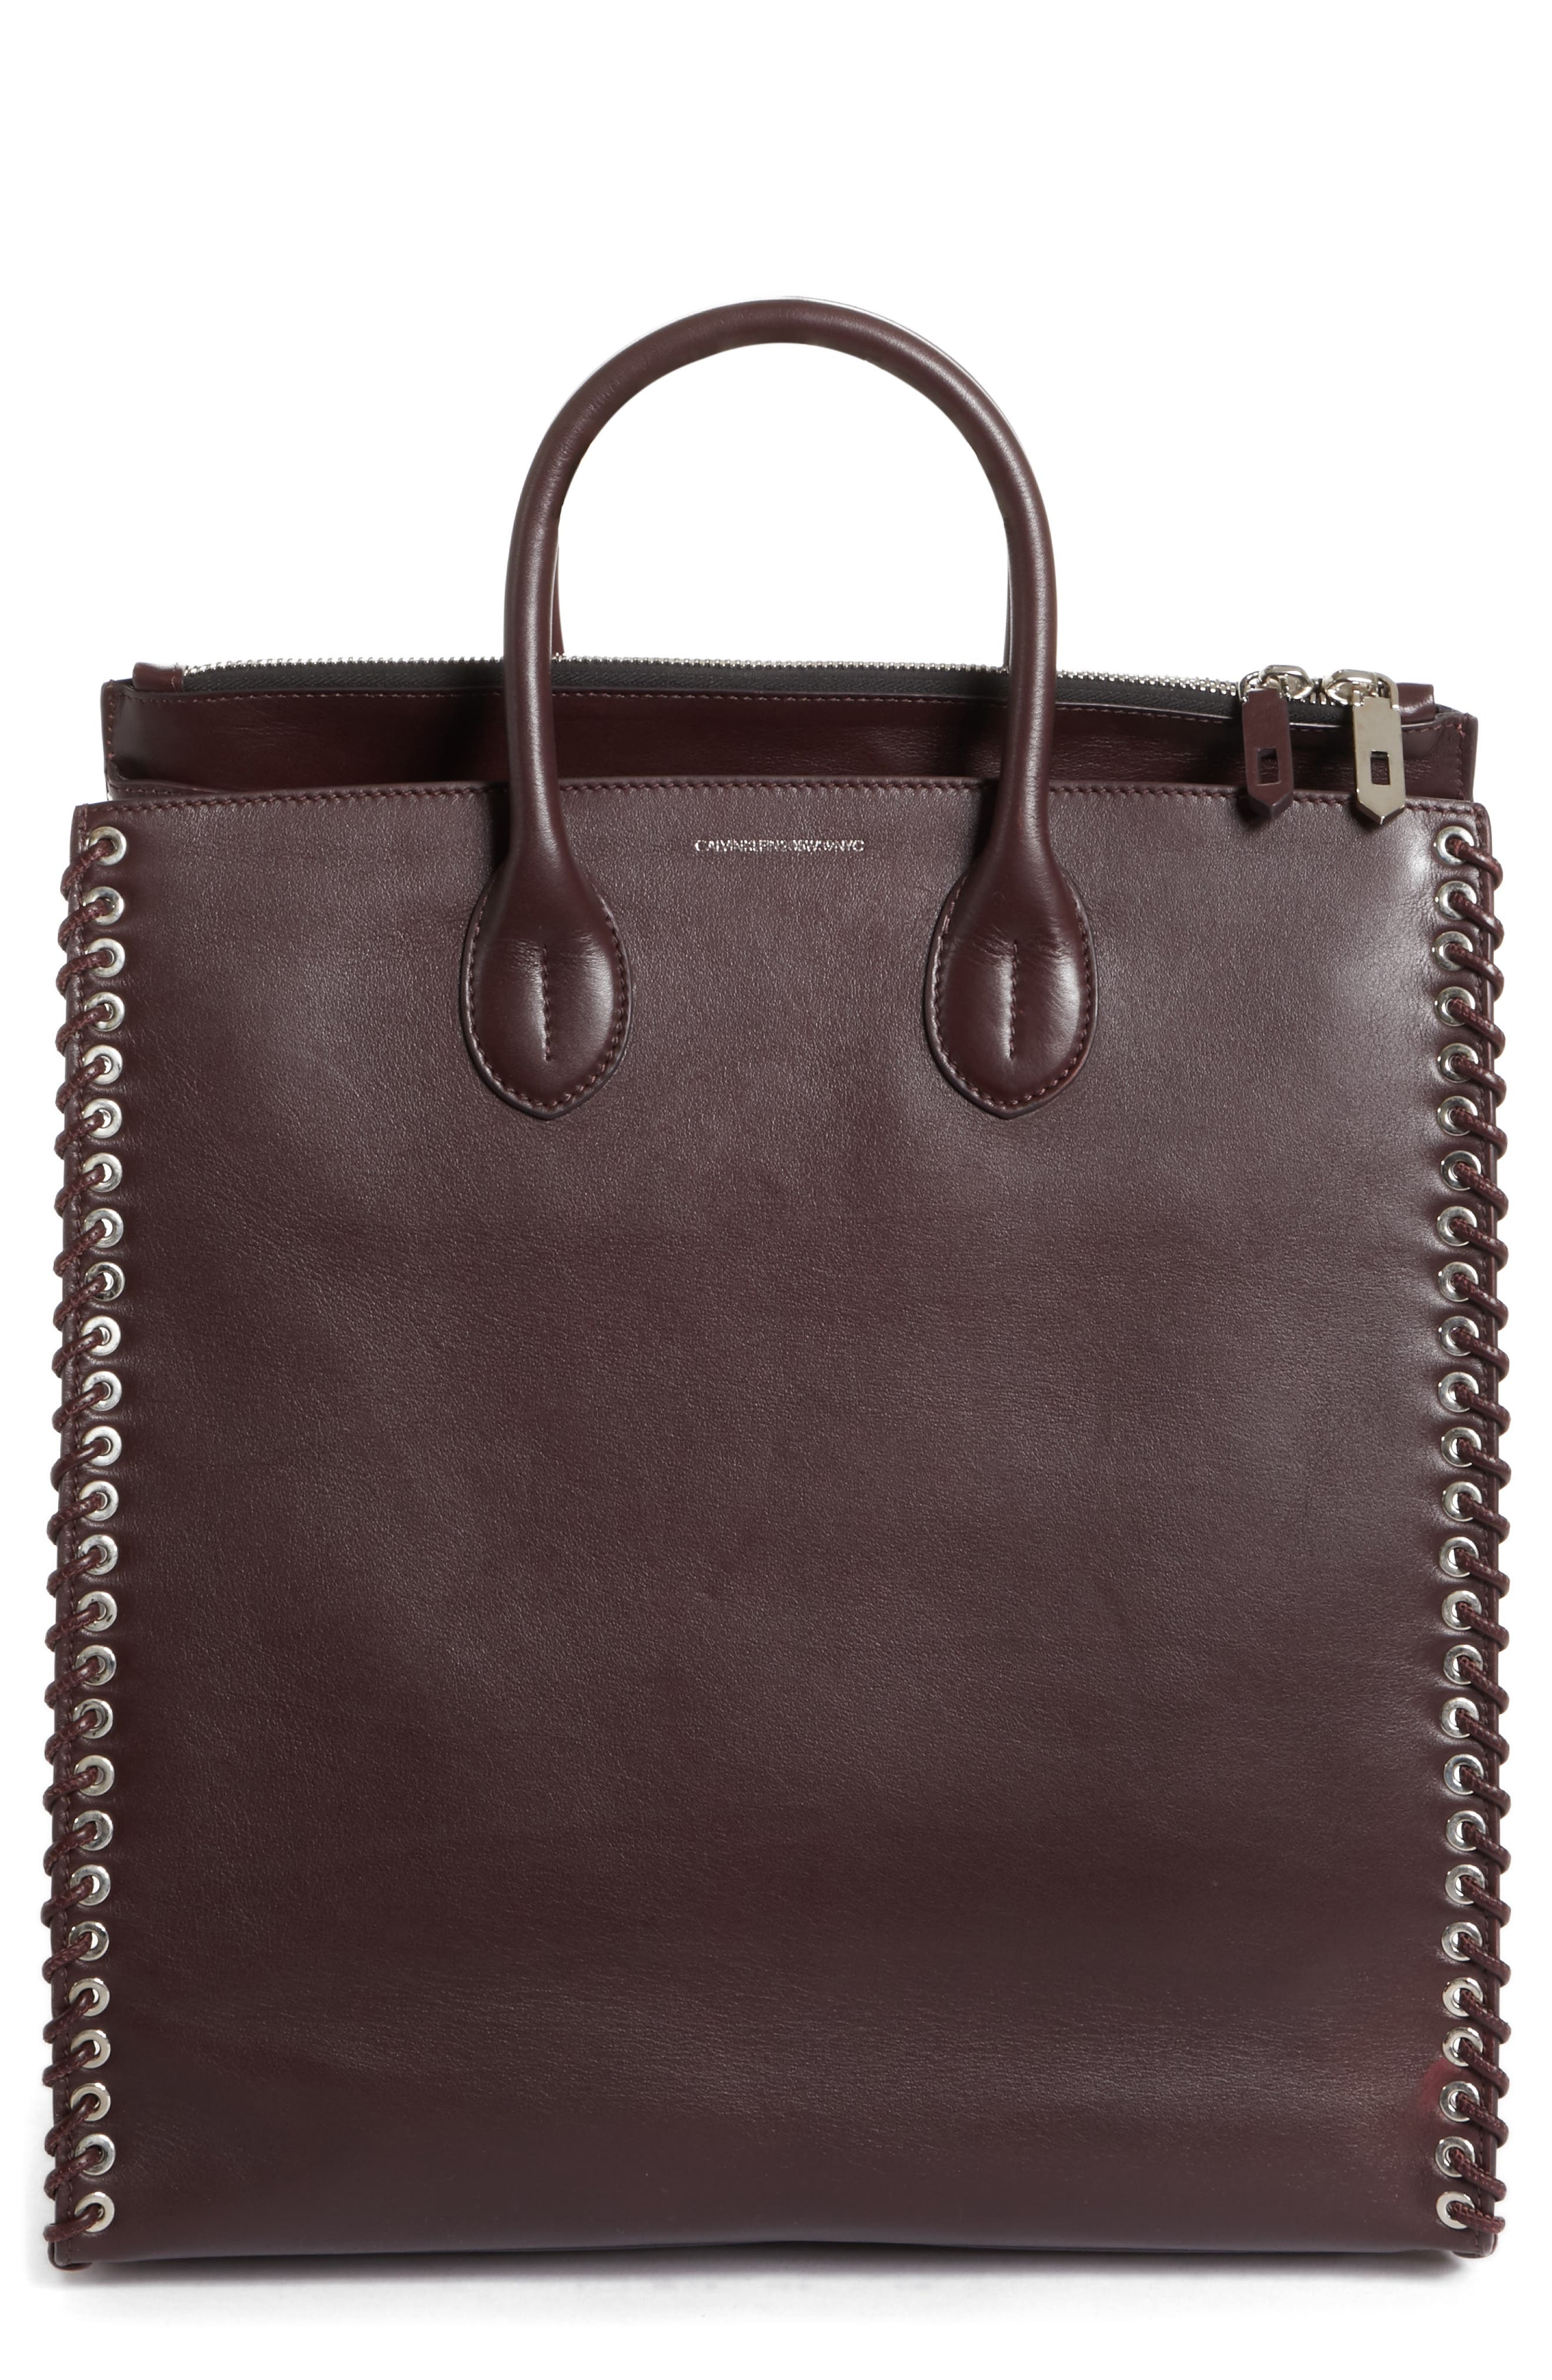 Whipstitch Calfskin Tote,                             Main thumbnail 1, color,                             200